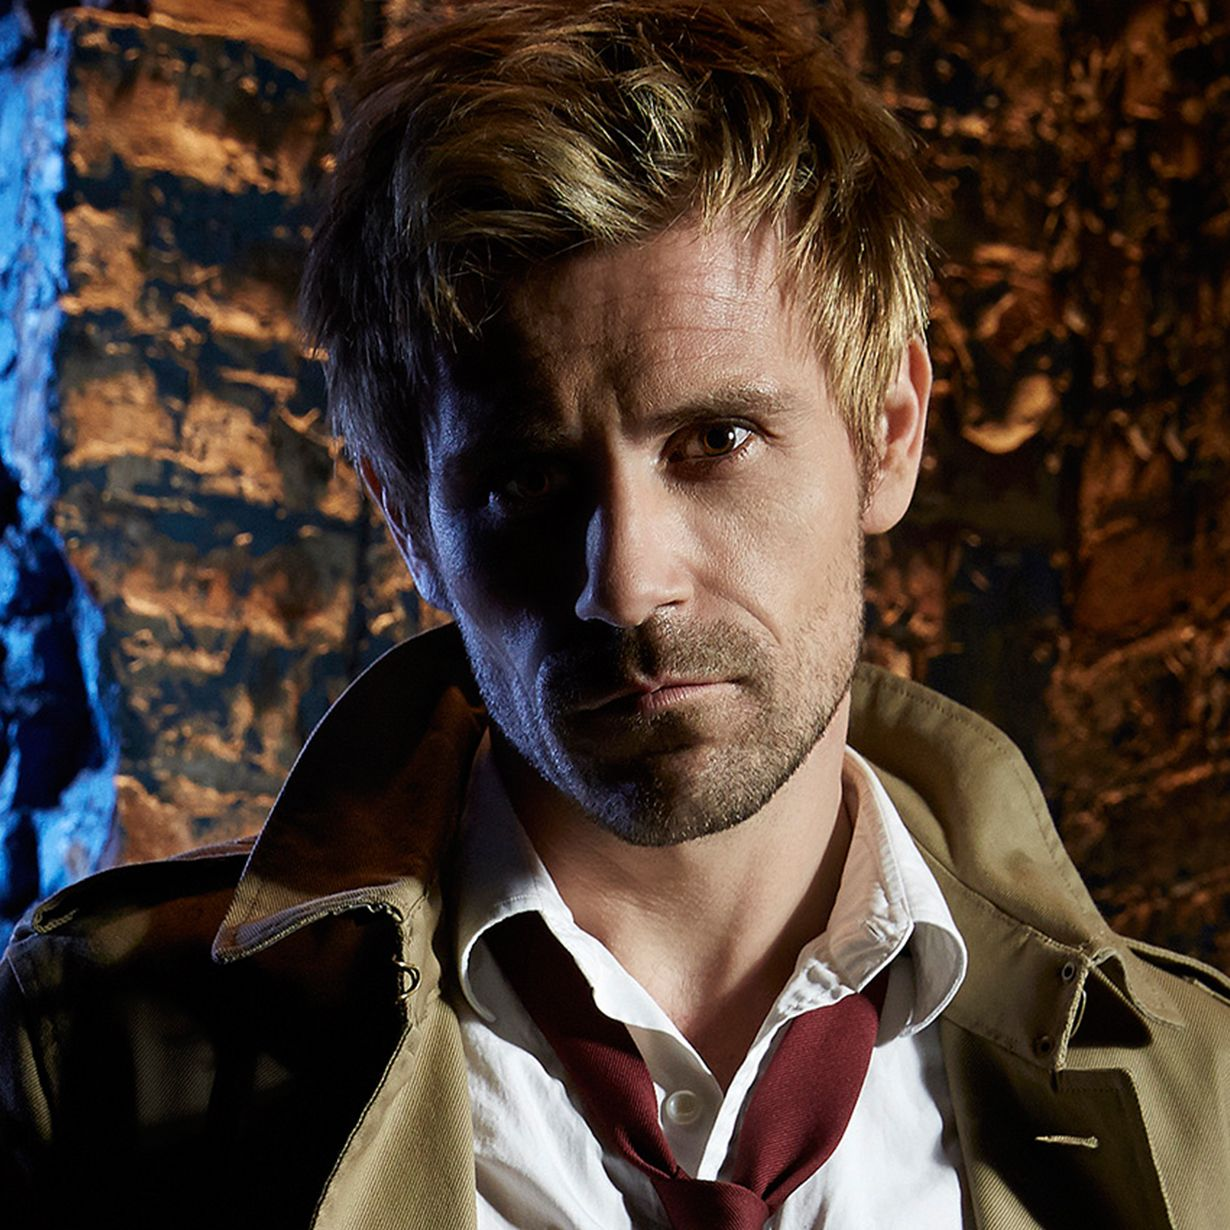 Pin By Hannah Cairns On Fangirling In 2020 Matt Ryan John Constantine Character Inspiration